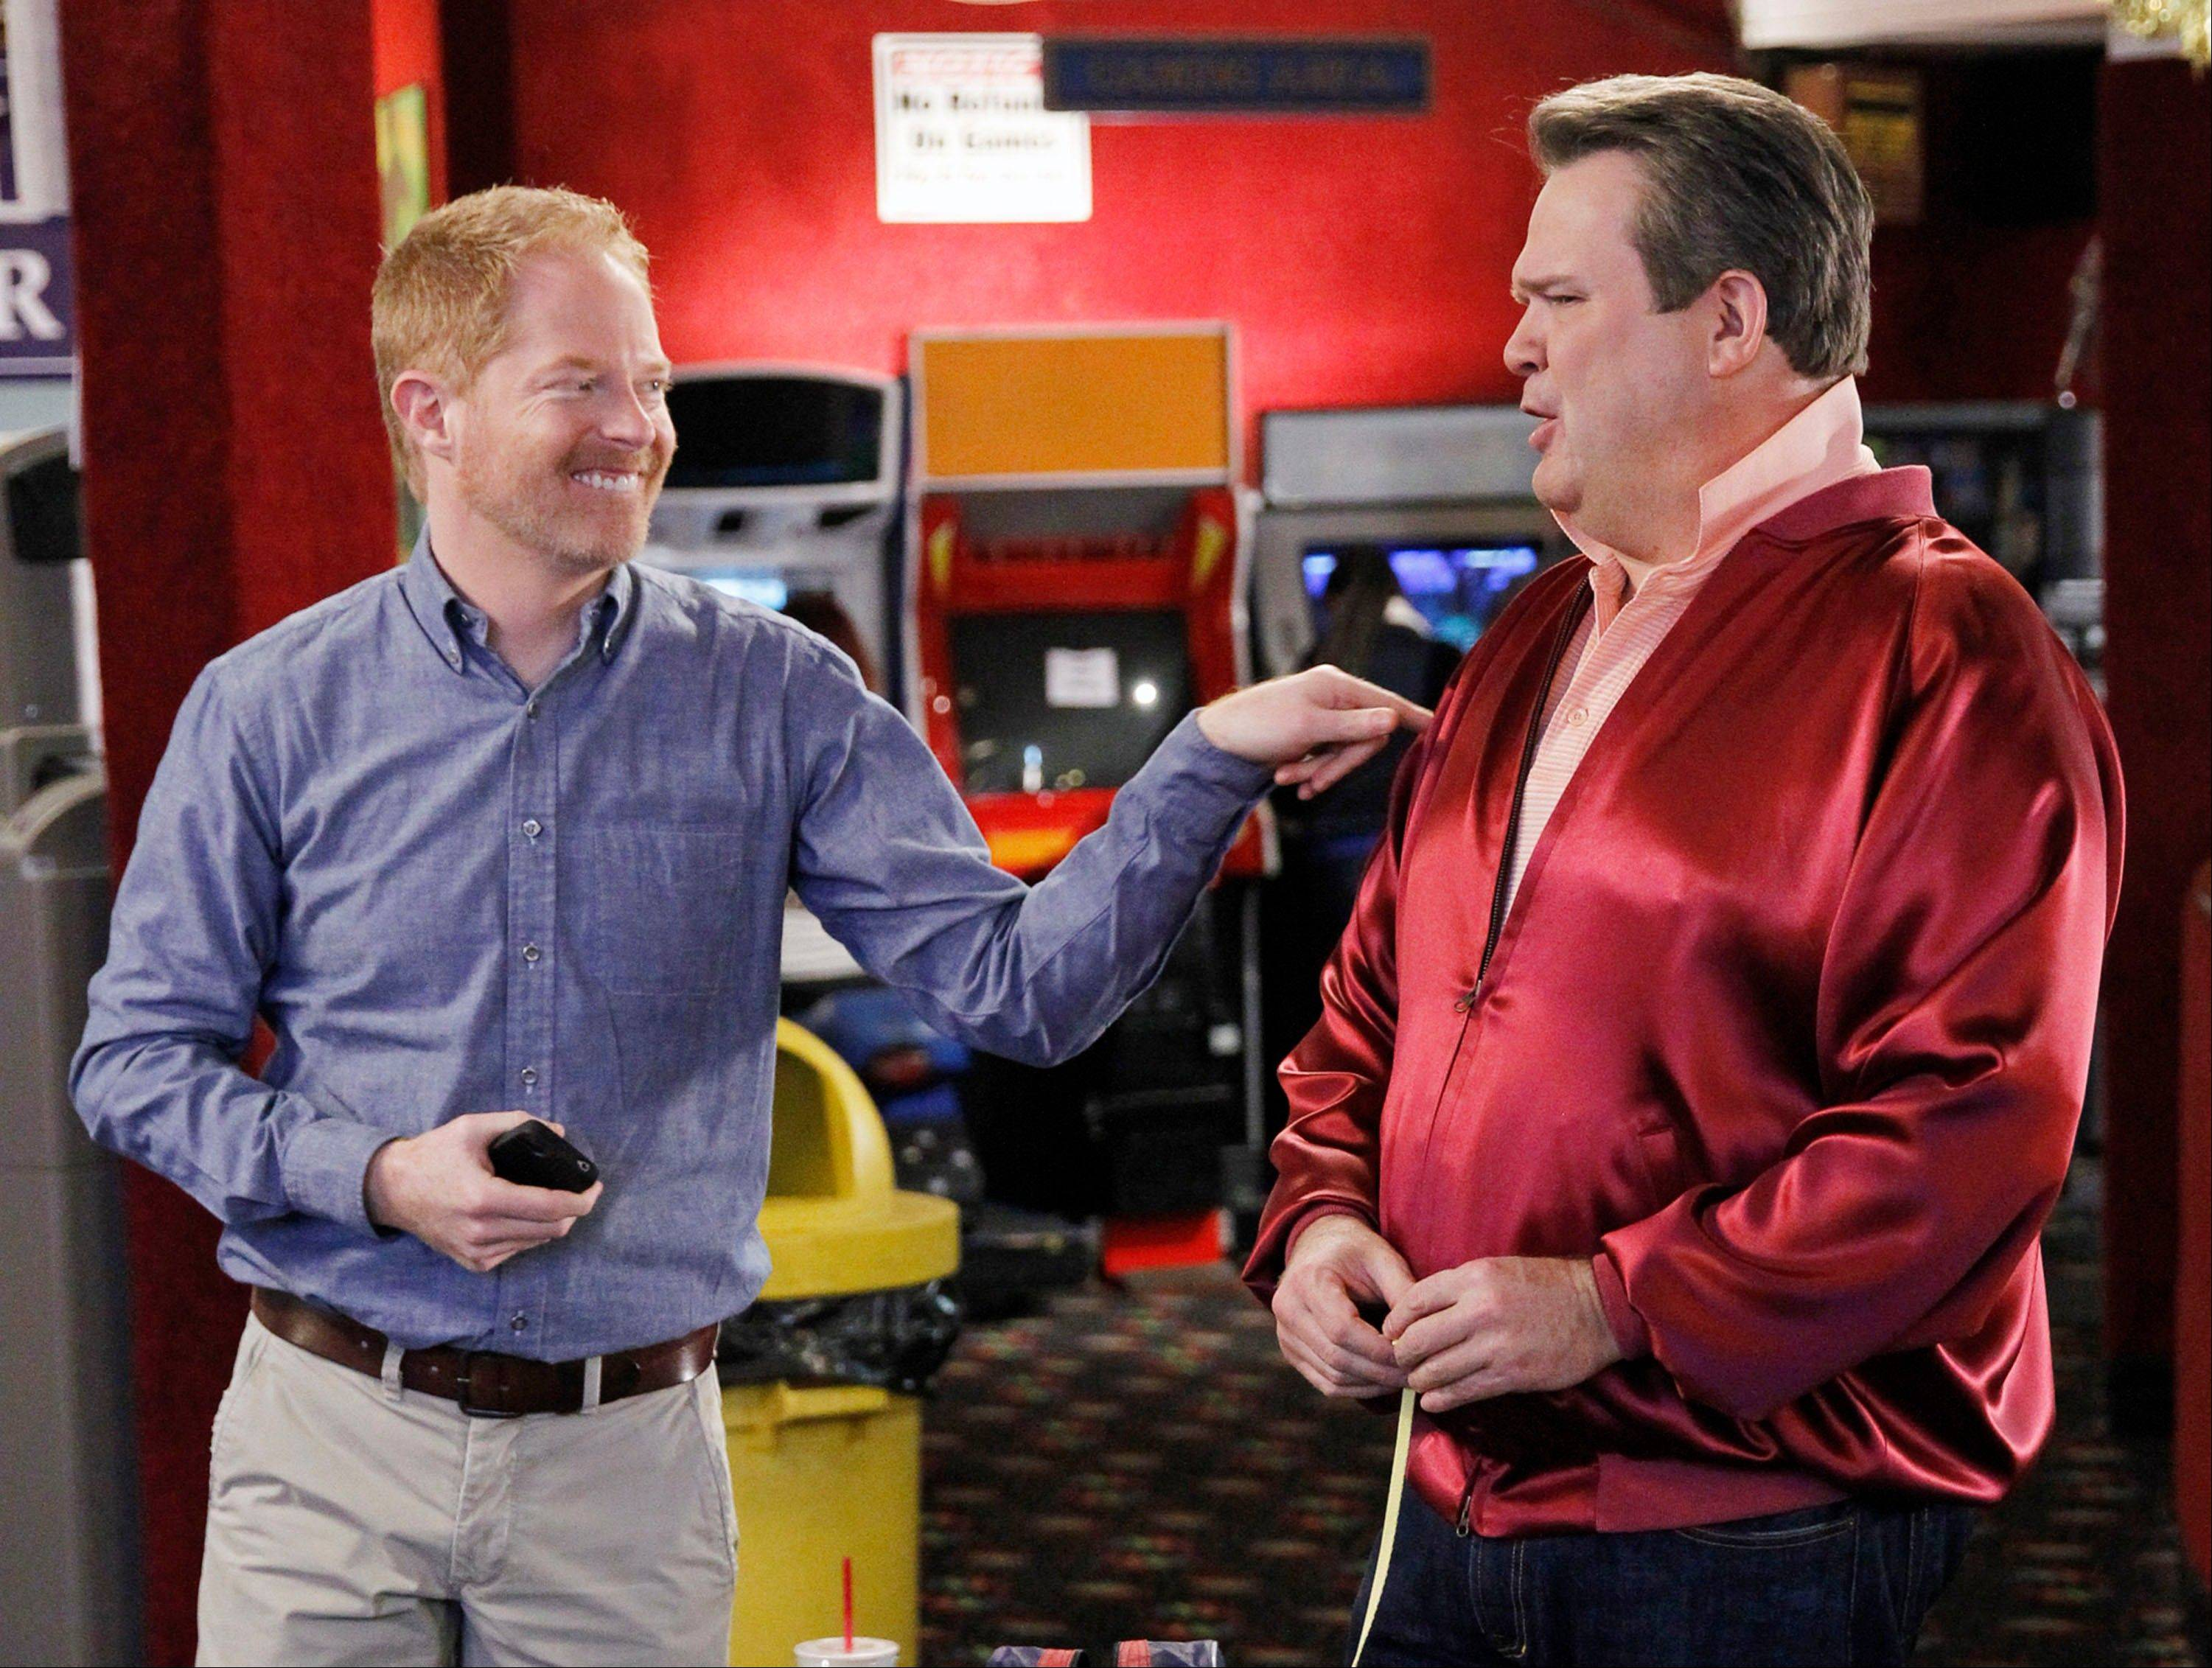 The ACLU is lobbying for the gay couple � Eric Stonestreet, right, as Cameron, and Jesse Tyler Ferguson as Mitchell � on �Modern Family� to get married. ACLU Action started a campaign to urge the show�s producers to script a wedding episode for Mitchell and Cameron, already fathers of an adopted child and one of three couples at the heart of the show.